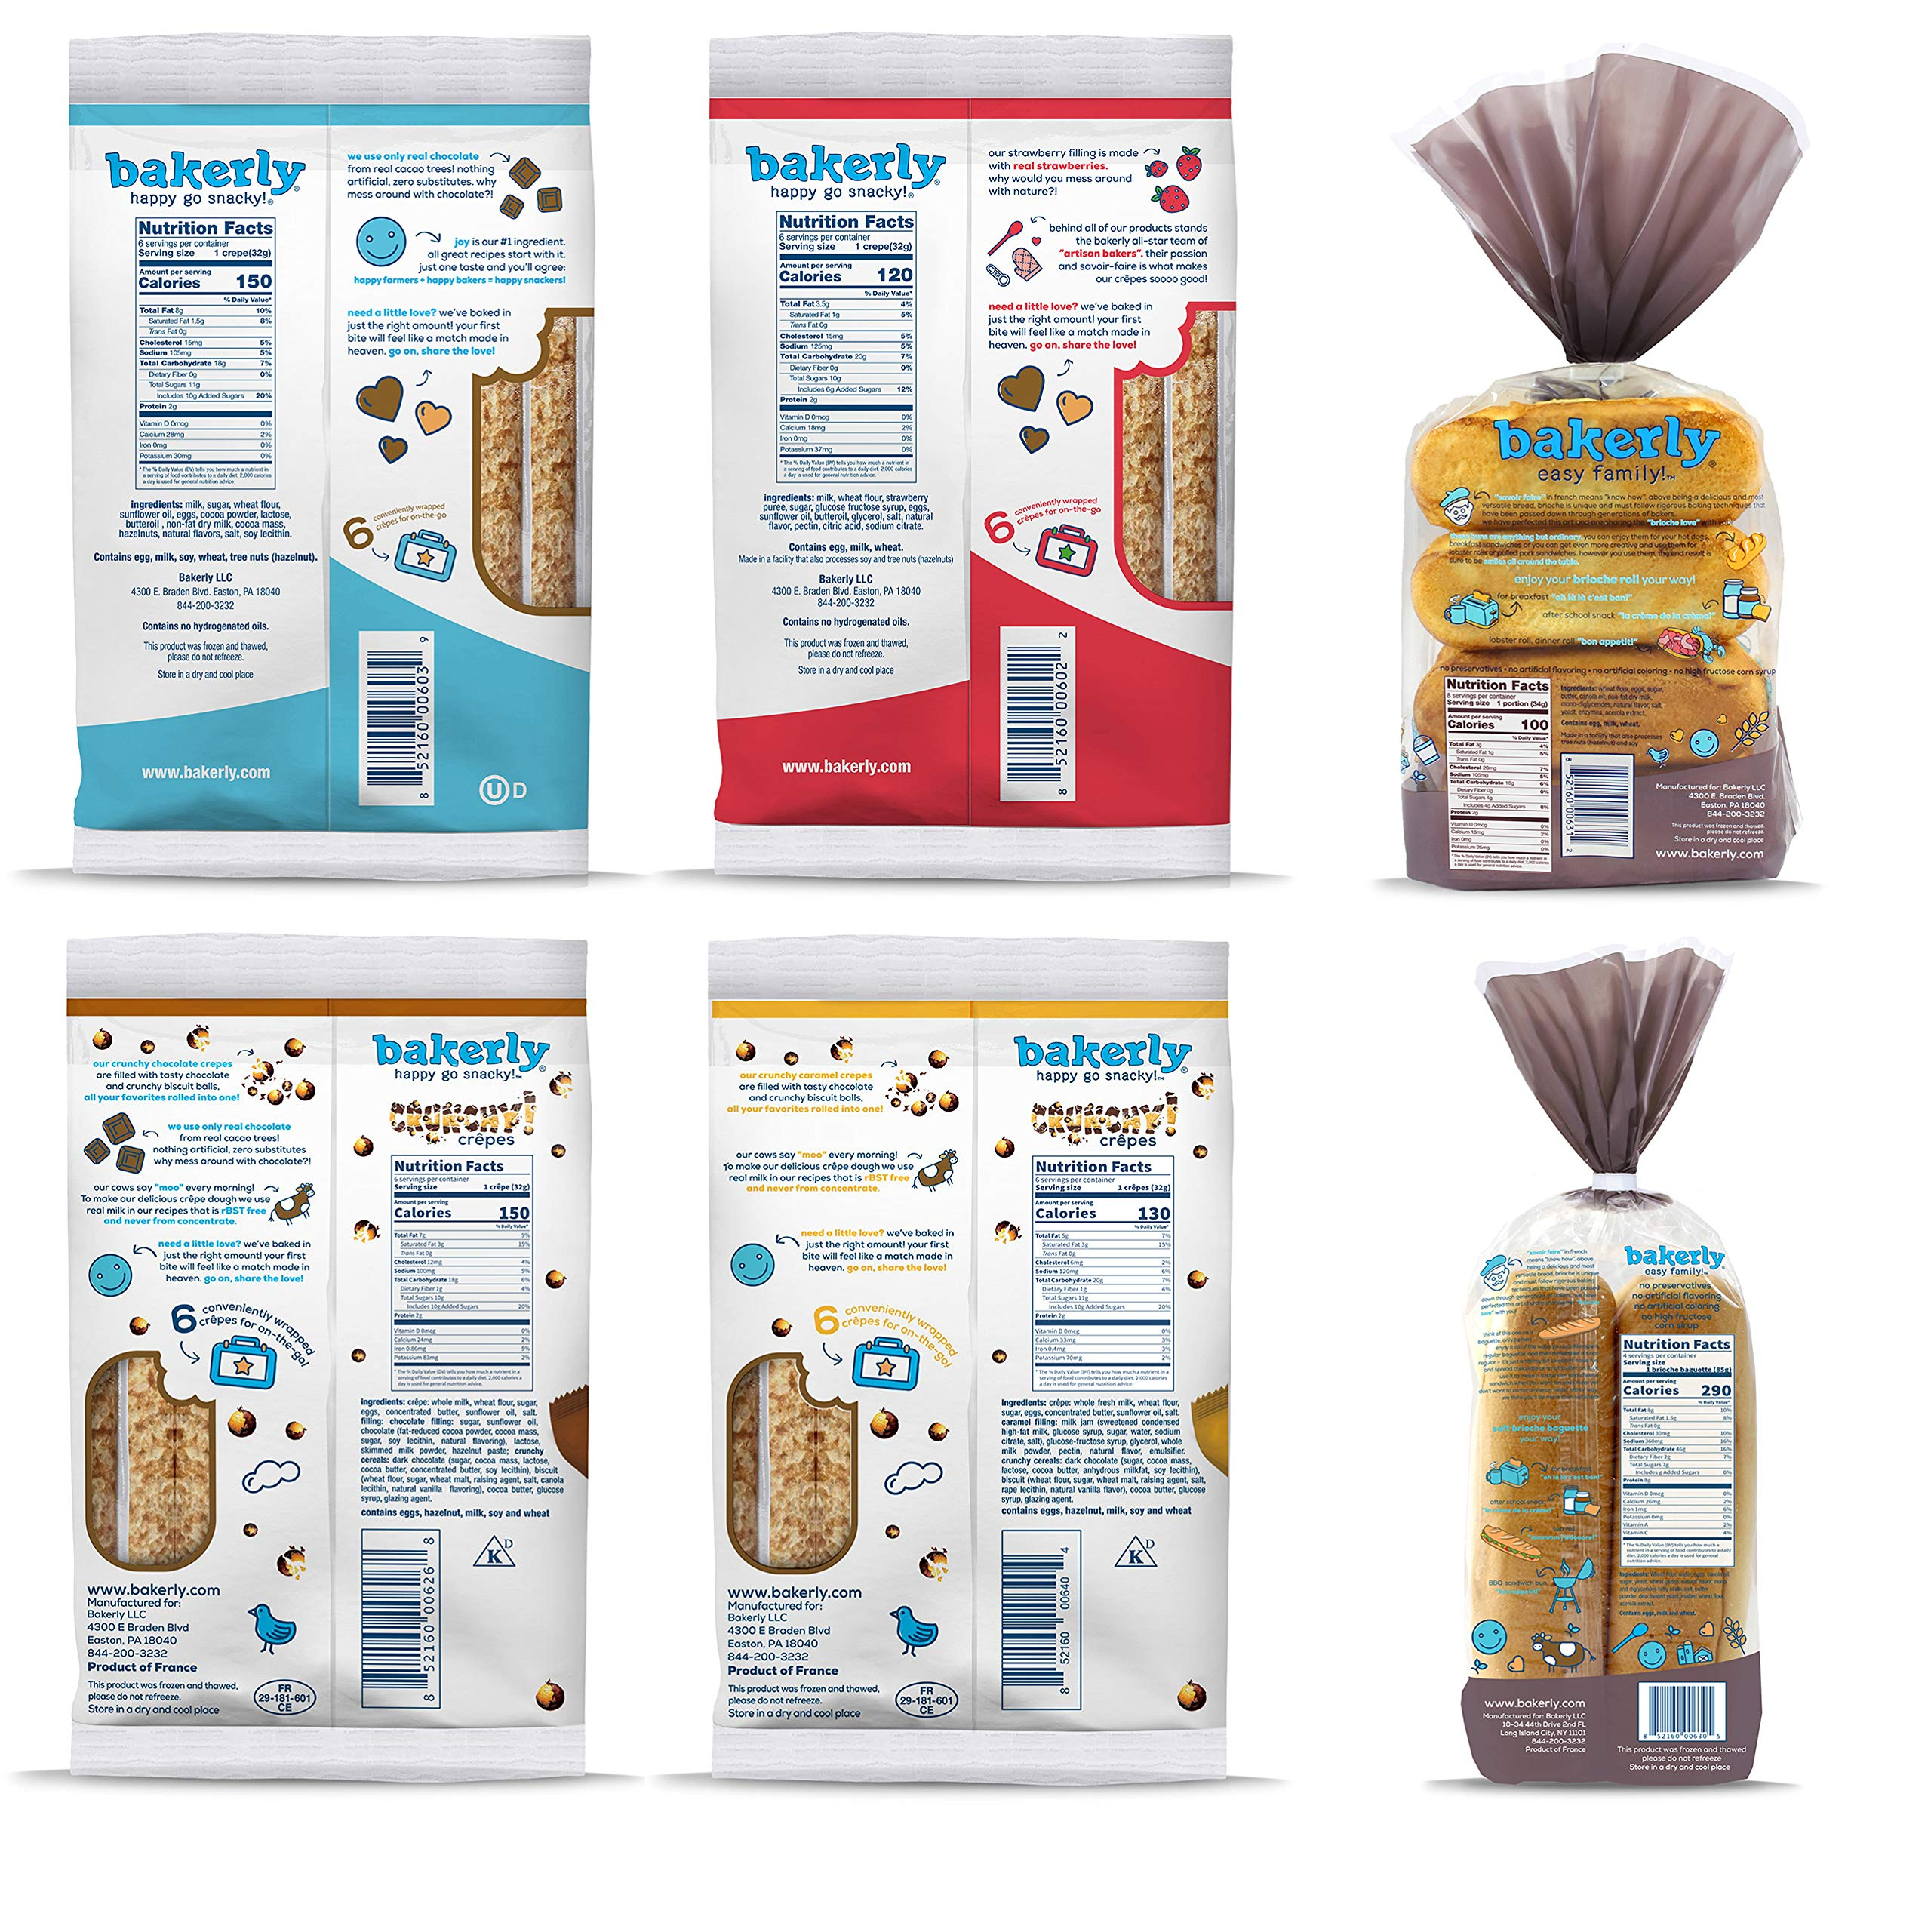 bakerly Filled Crepes & Brioches Variety Pack of 6 (24 Crepes + 4 Baguettes + 8 Brioche Rolls) by bakerly (Image #2)